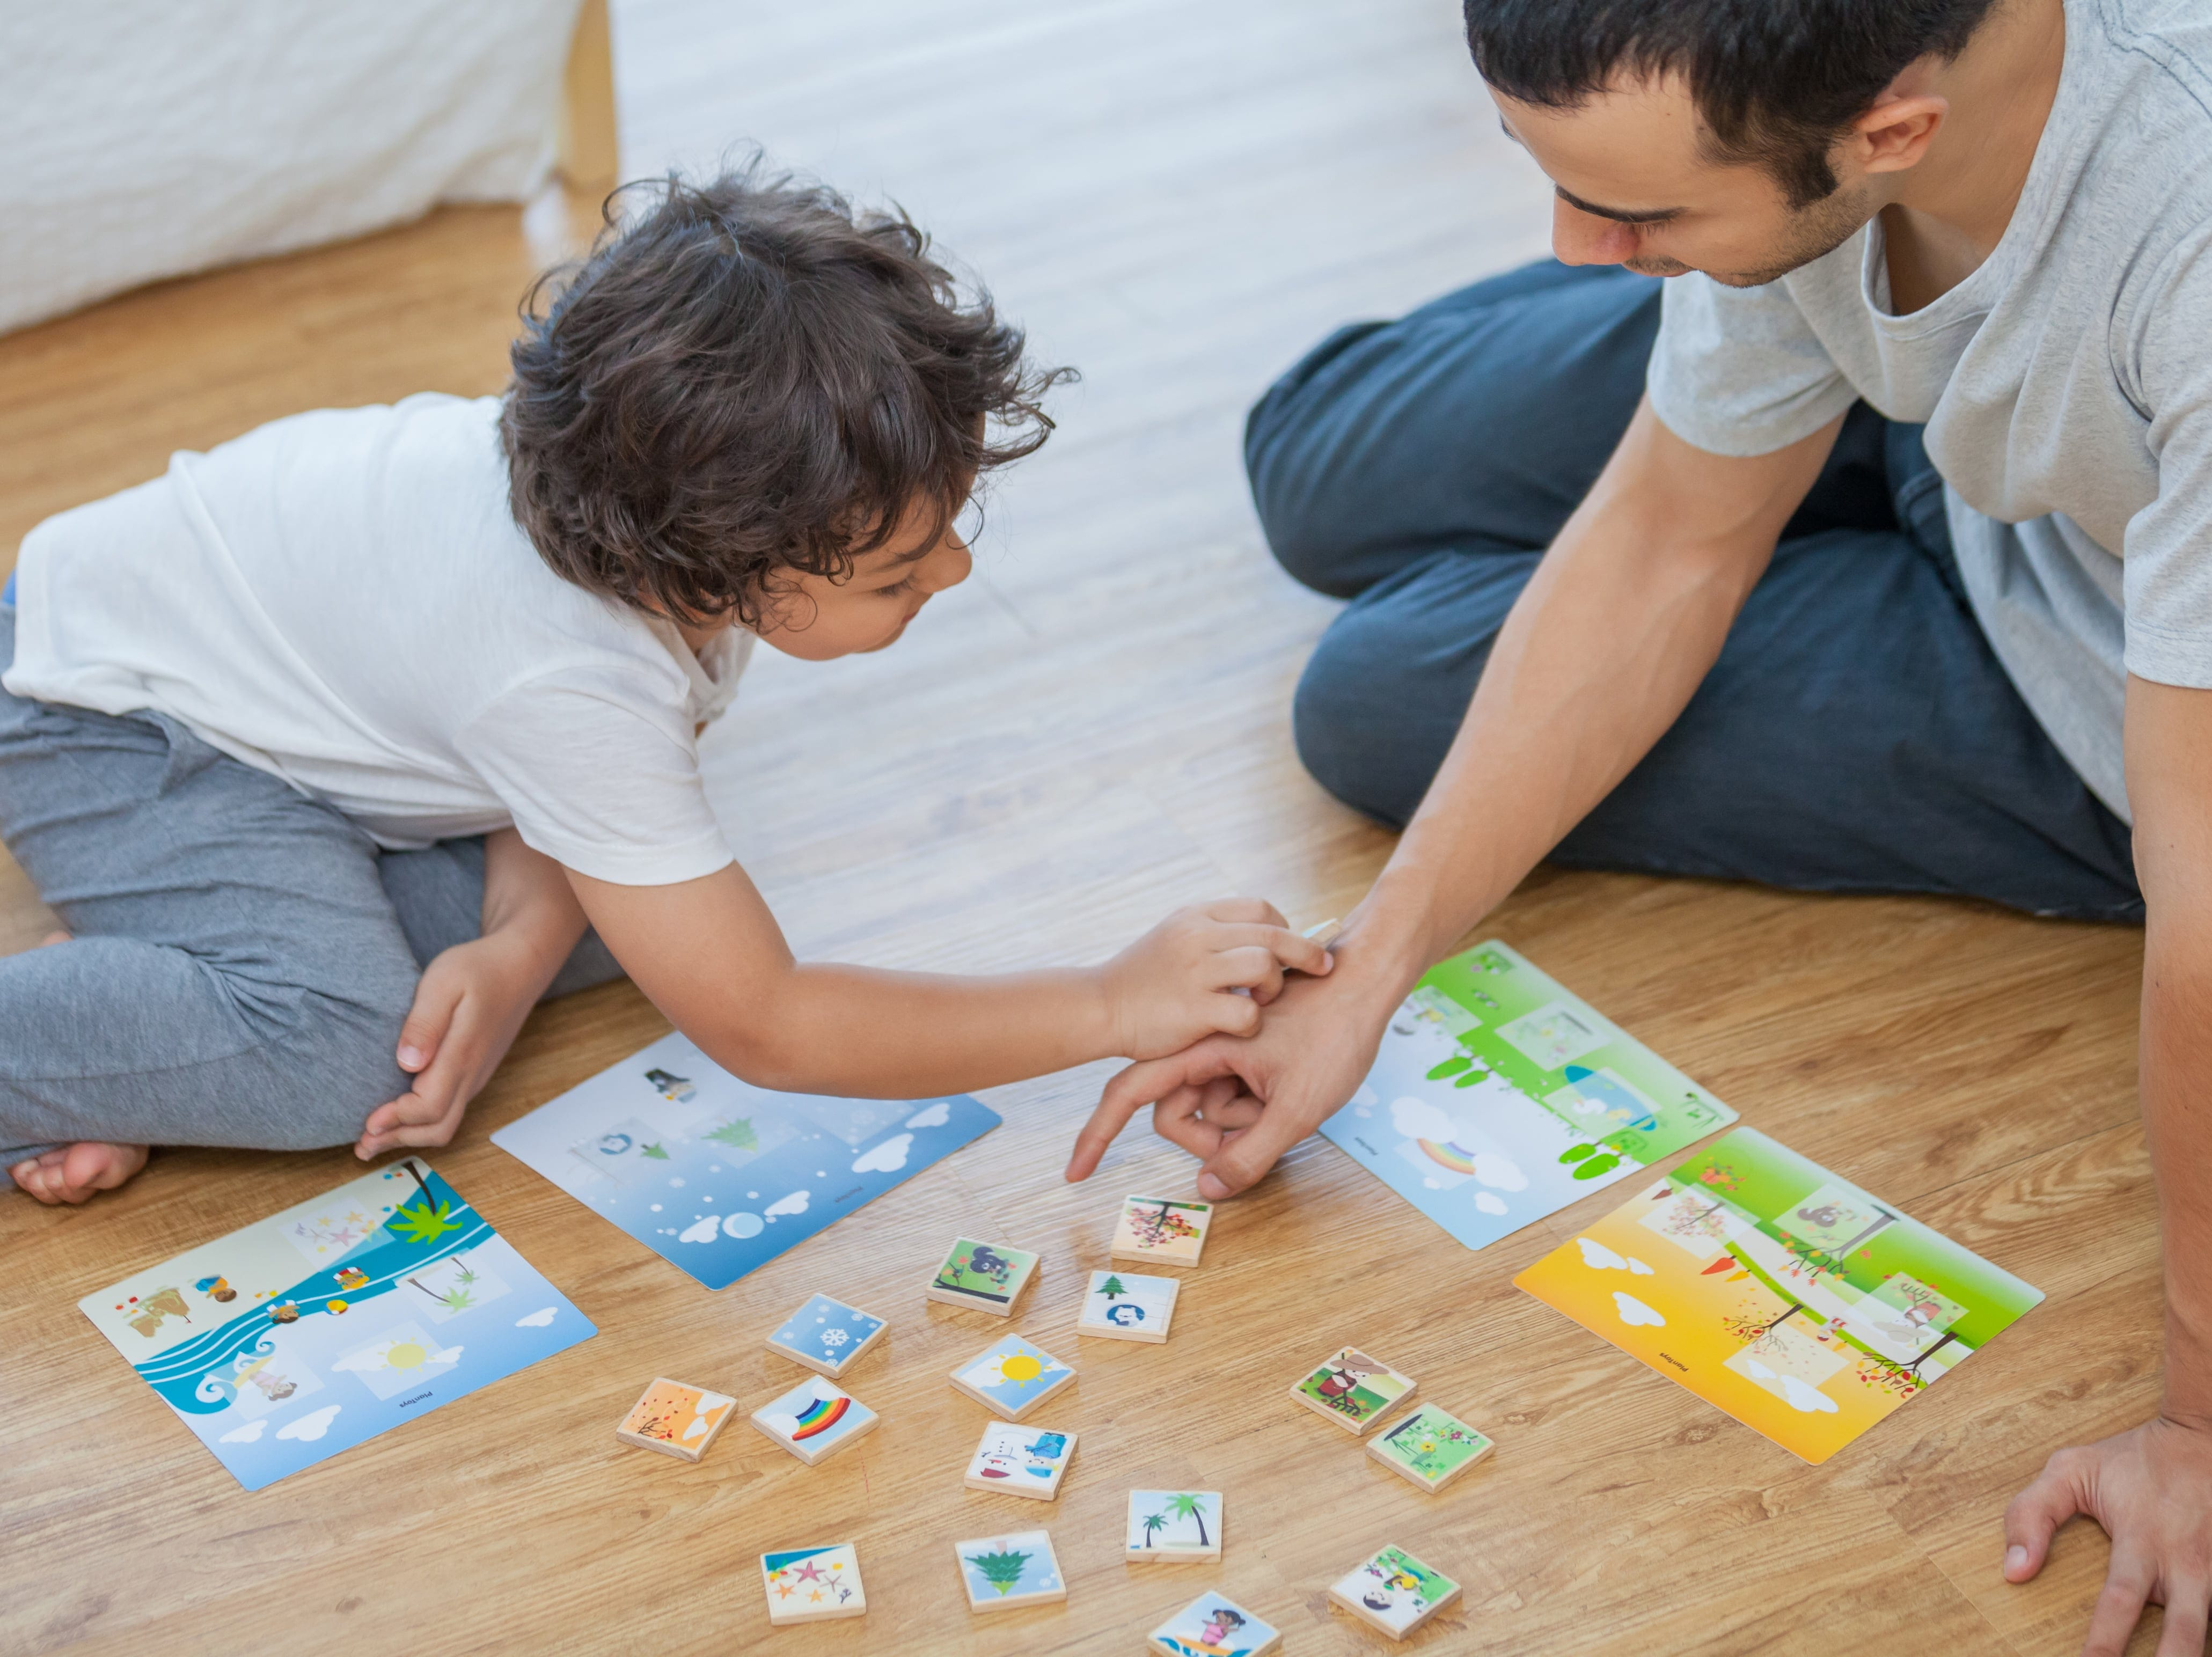 4625_PlanToys_SEASONAL_BINGO_Game_and_Puzzles_Social_Visual_Problem_Solving_Language_and_Communications_3yrs_Wooden_toys_Education_toys_Safety_Toys_Non-toxic_0.jpg